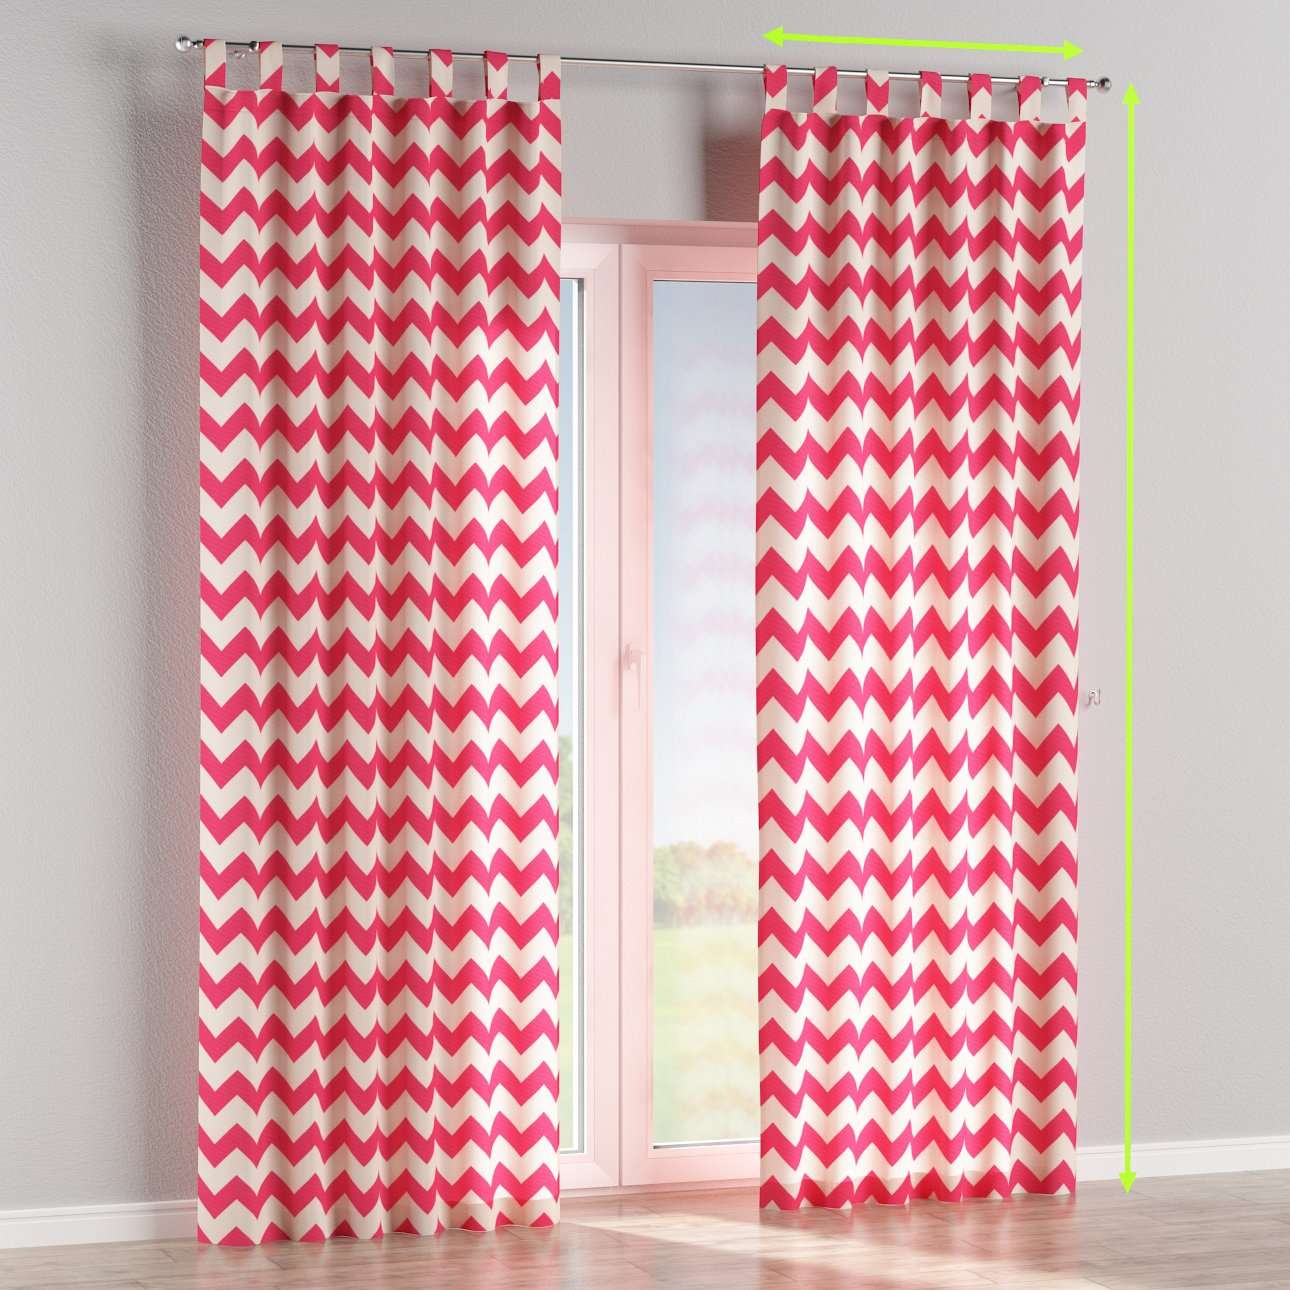 Tab top lined curtains in collection Comic Book & Geo Prints, fabric: 135-00